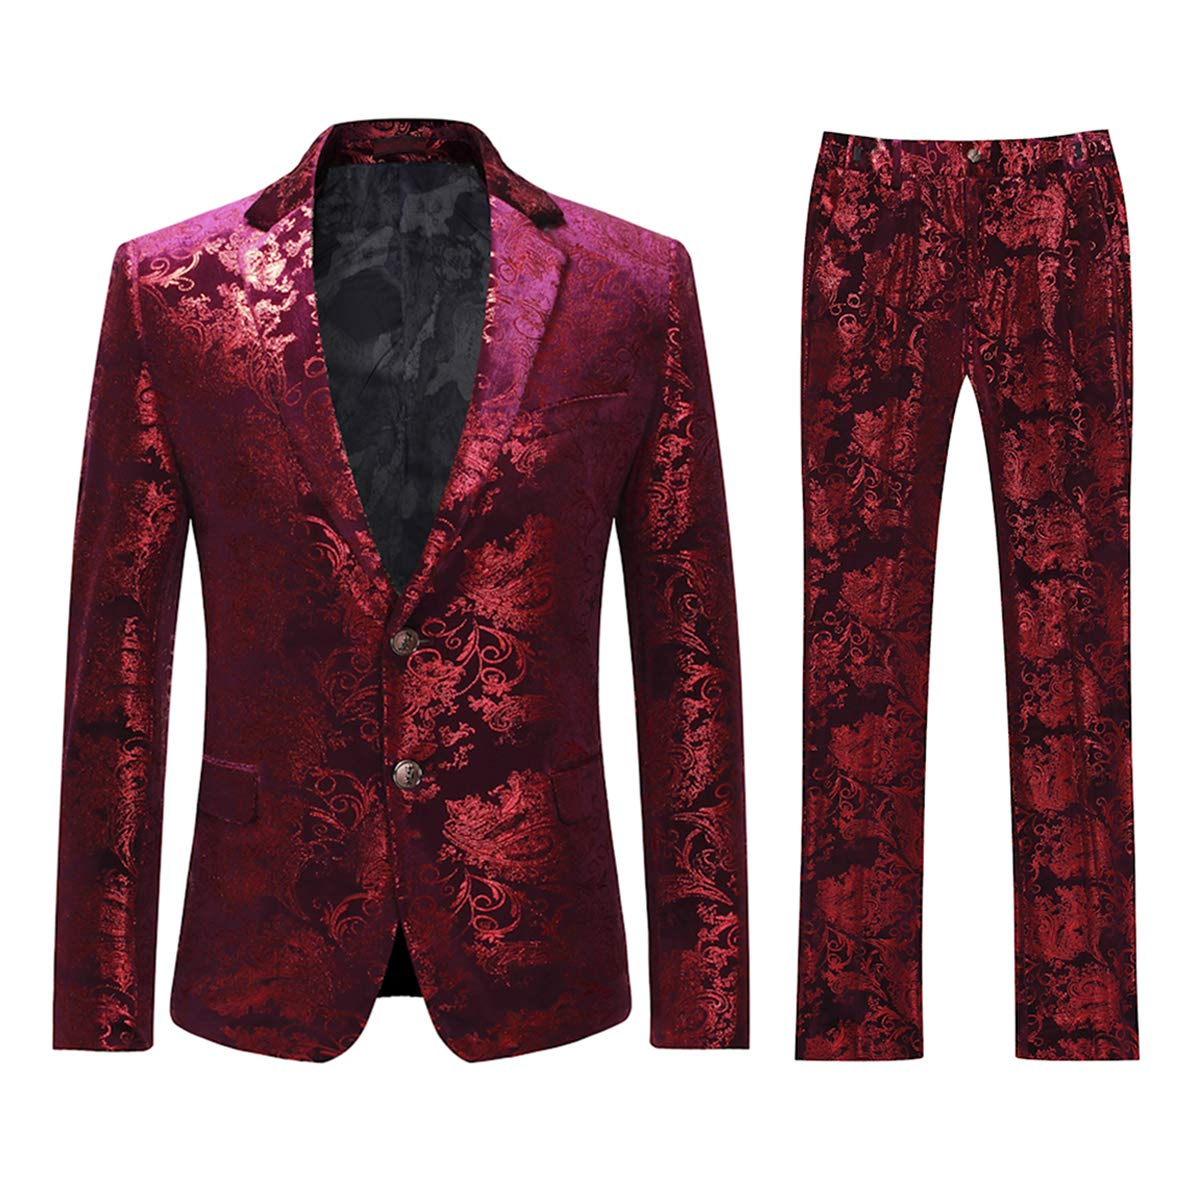 Cloudstyle Men's Dress Suit Single-Breasted 2 Pieces Slim Fit 2 Buttons Suits Red by Cloudstyle